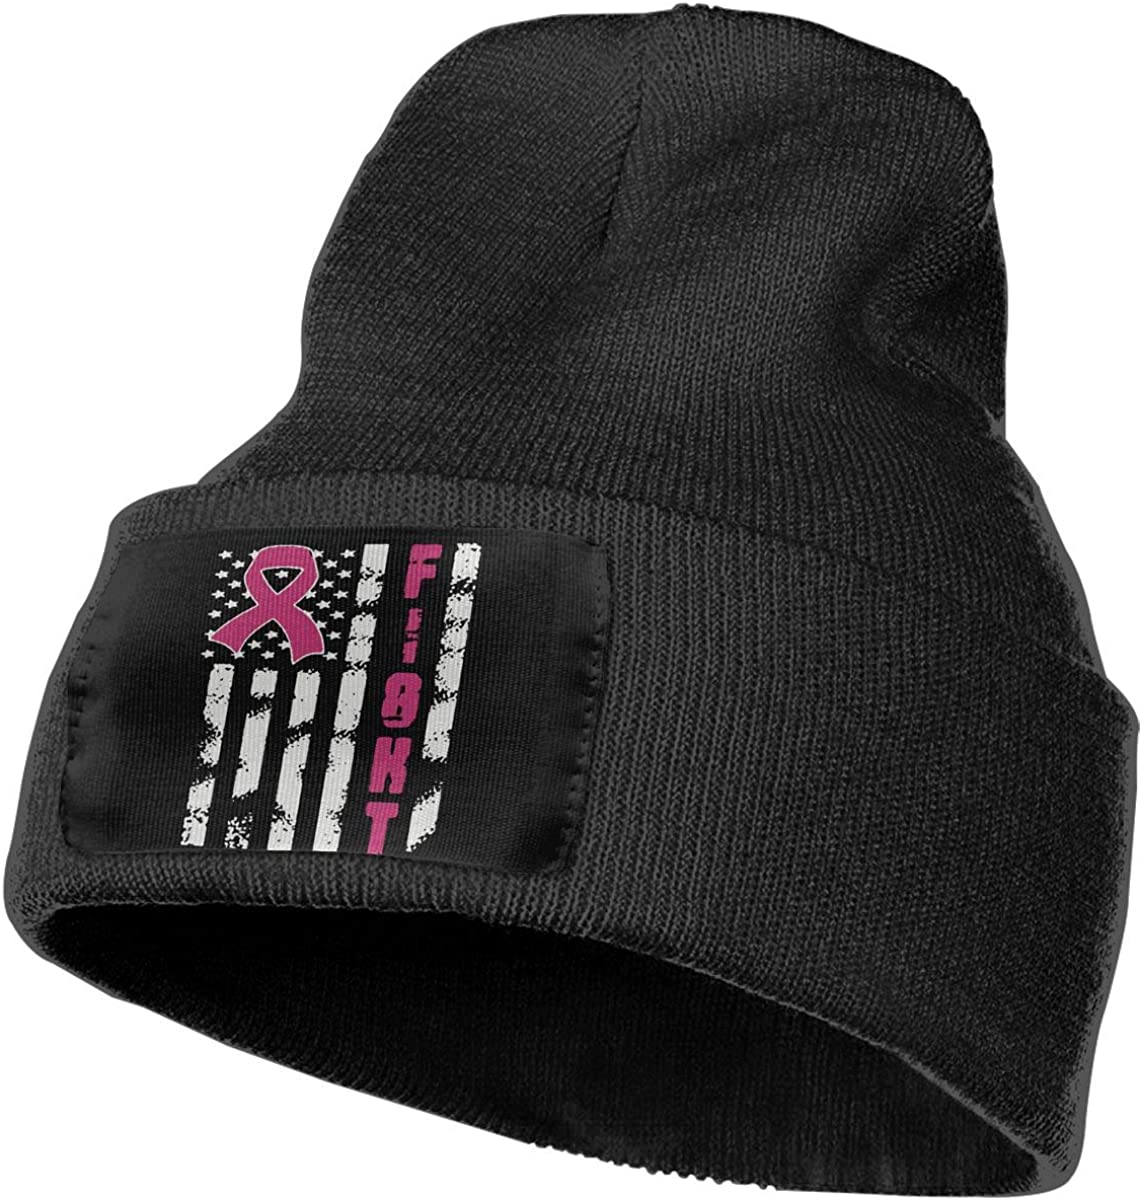 Breast Cancer Flag Fashion Ski Cap WHOO93@Y Unisex 100/% Acrylic Knitted Hat Cap